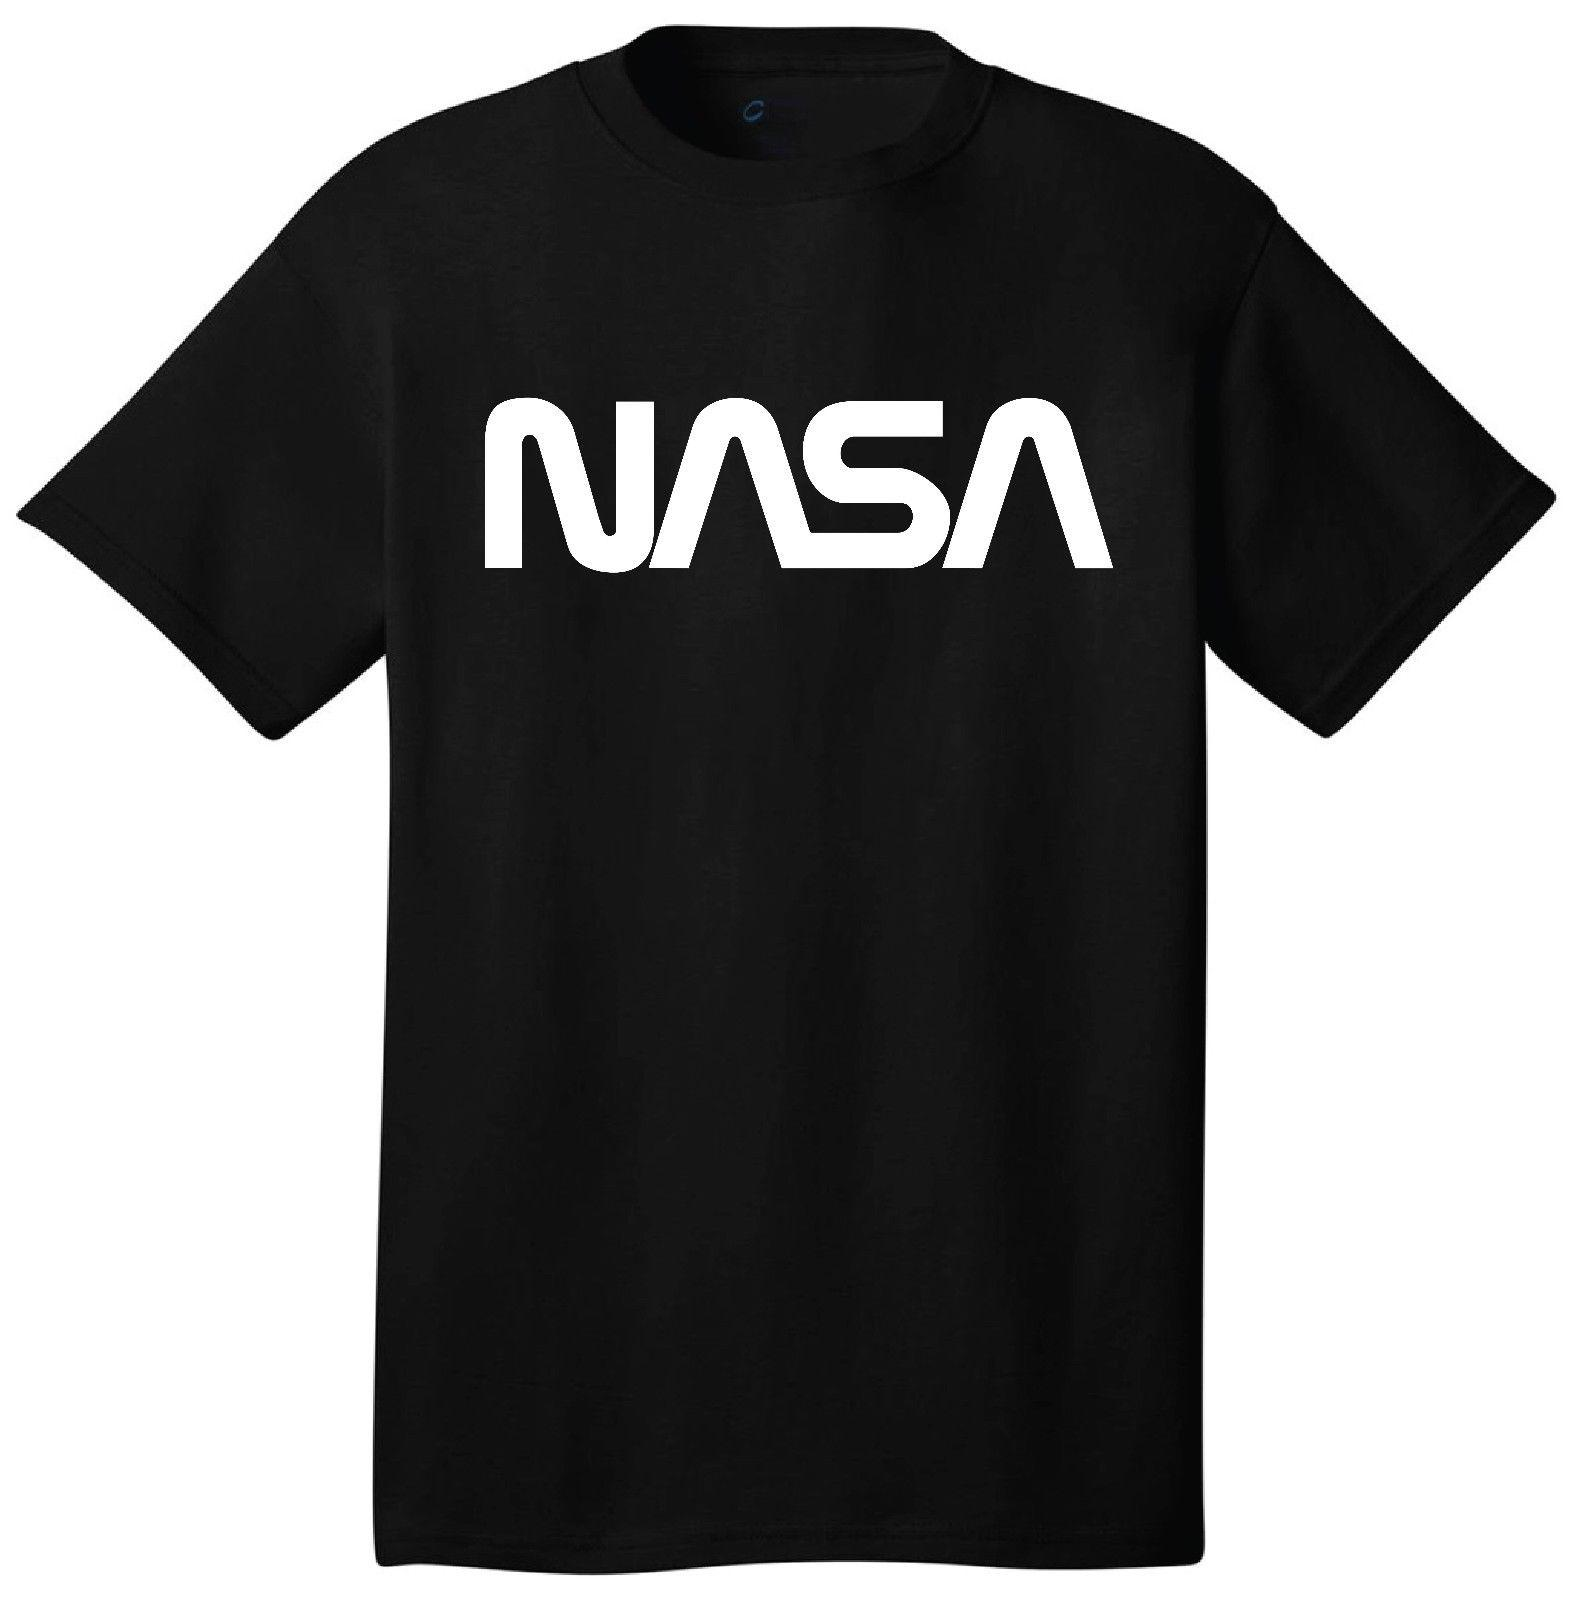 Nasa Logo T-Shirt Short Sleeve Outer Space Astronaut Retro 60's 70's 80's  Style Funny free shipping Unisex tee